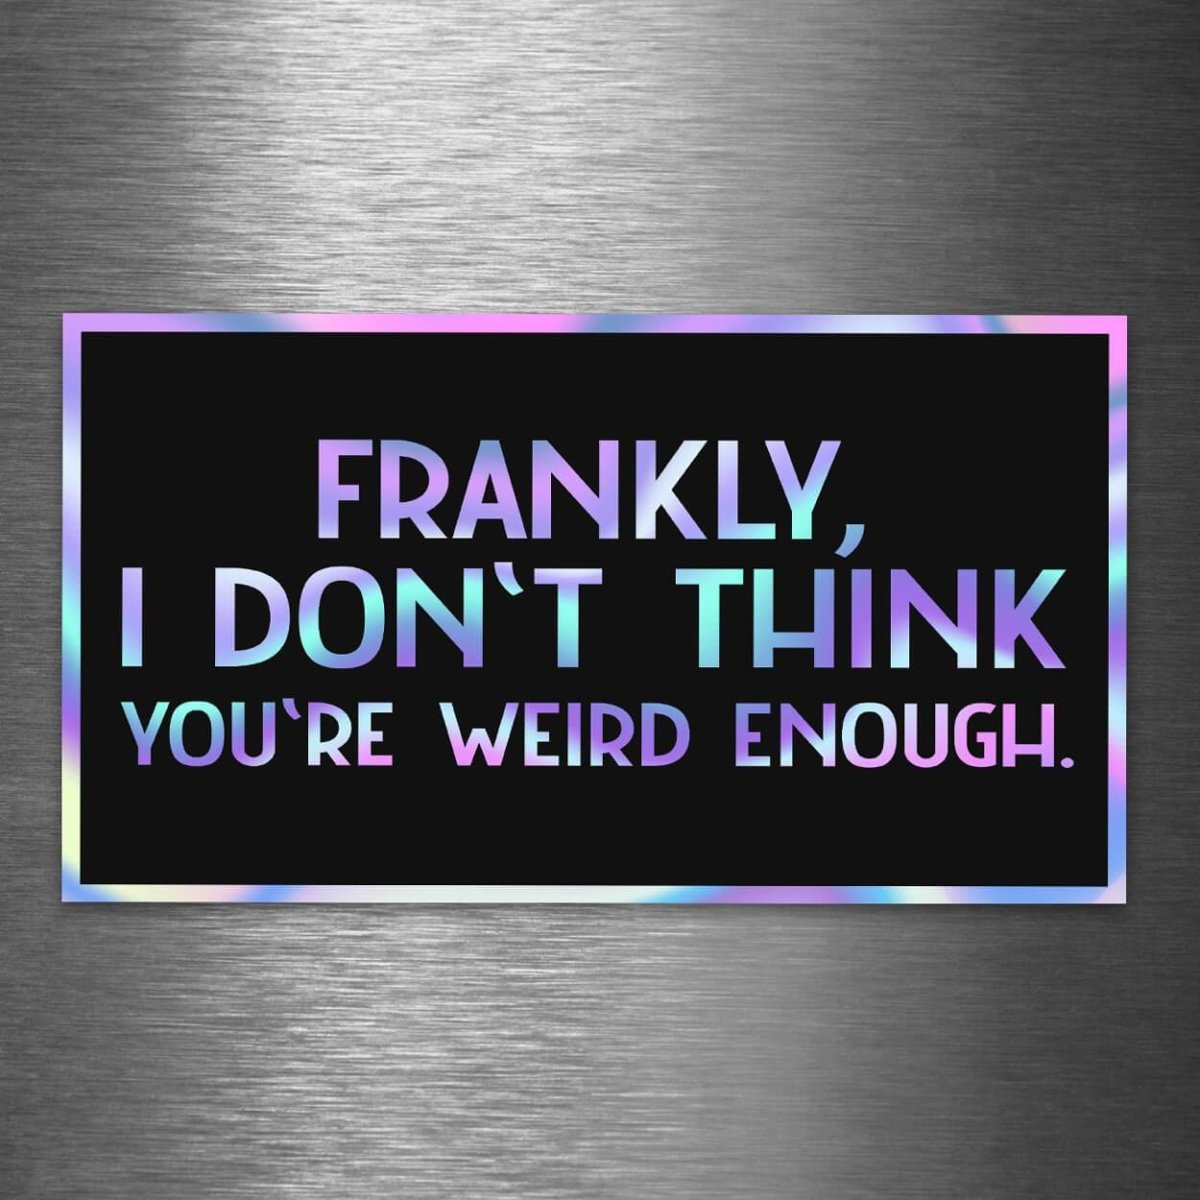 Frankly, I Don't Think You're Weird Enough - Hologram Sticker - Dan Pearce Sticker Shop